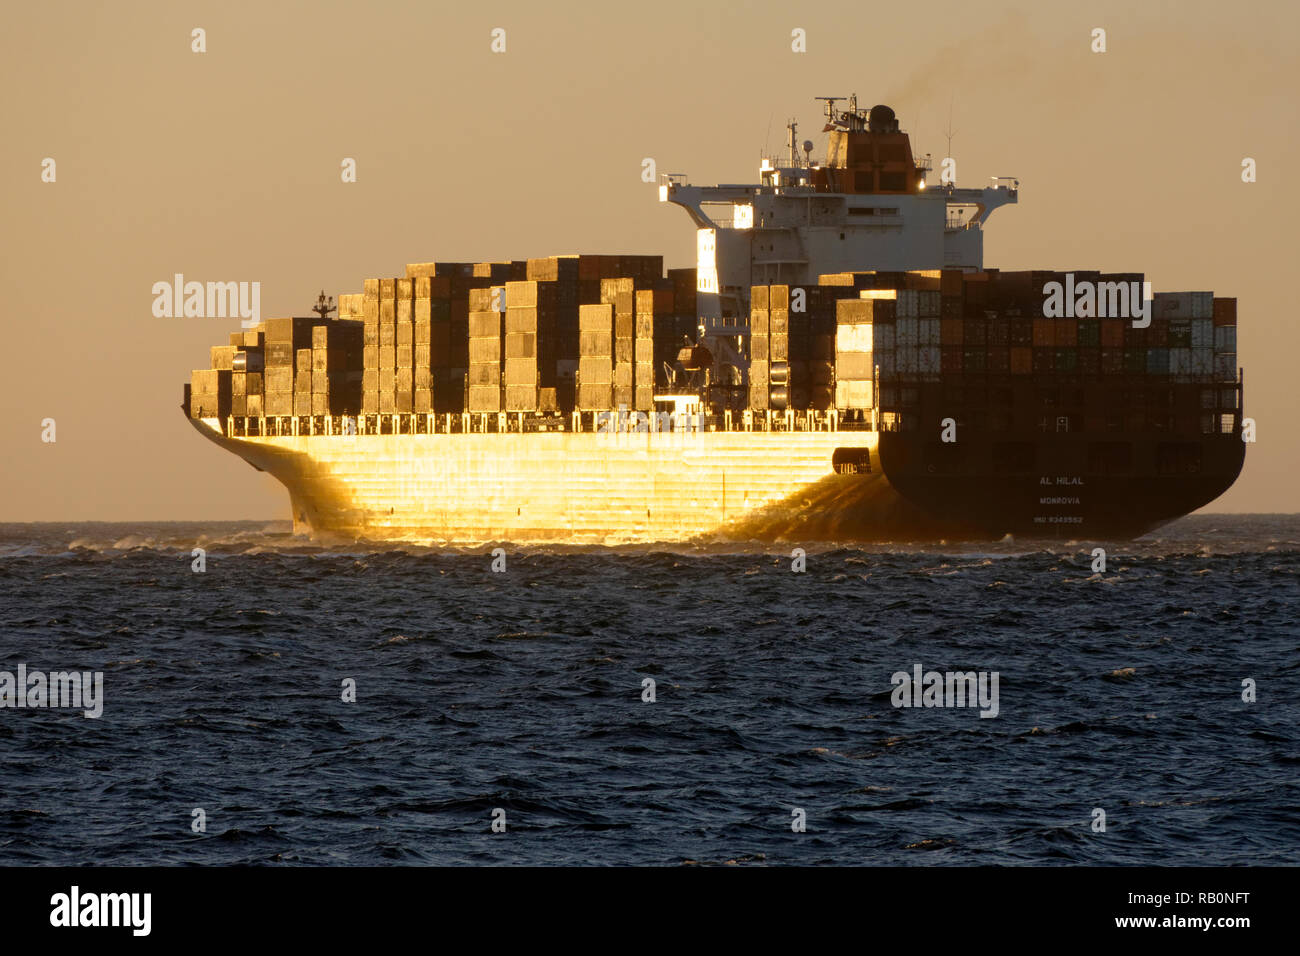 Container ship Al Hilal Monrovia on the Indian Ocean, Fremantle, Western Australia - Stock Image